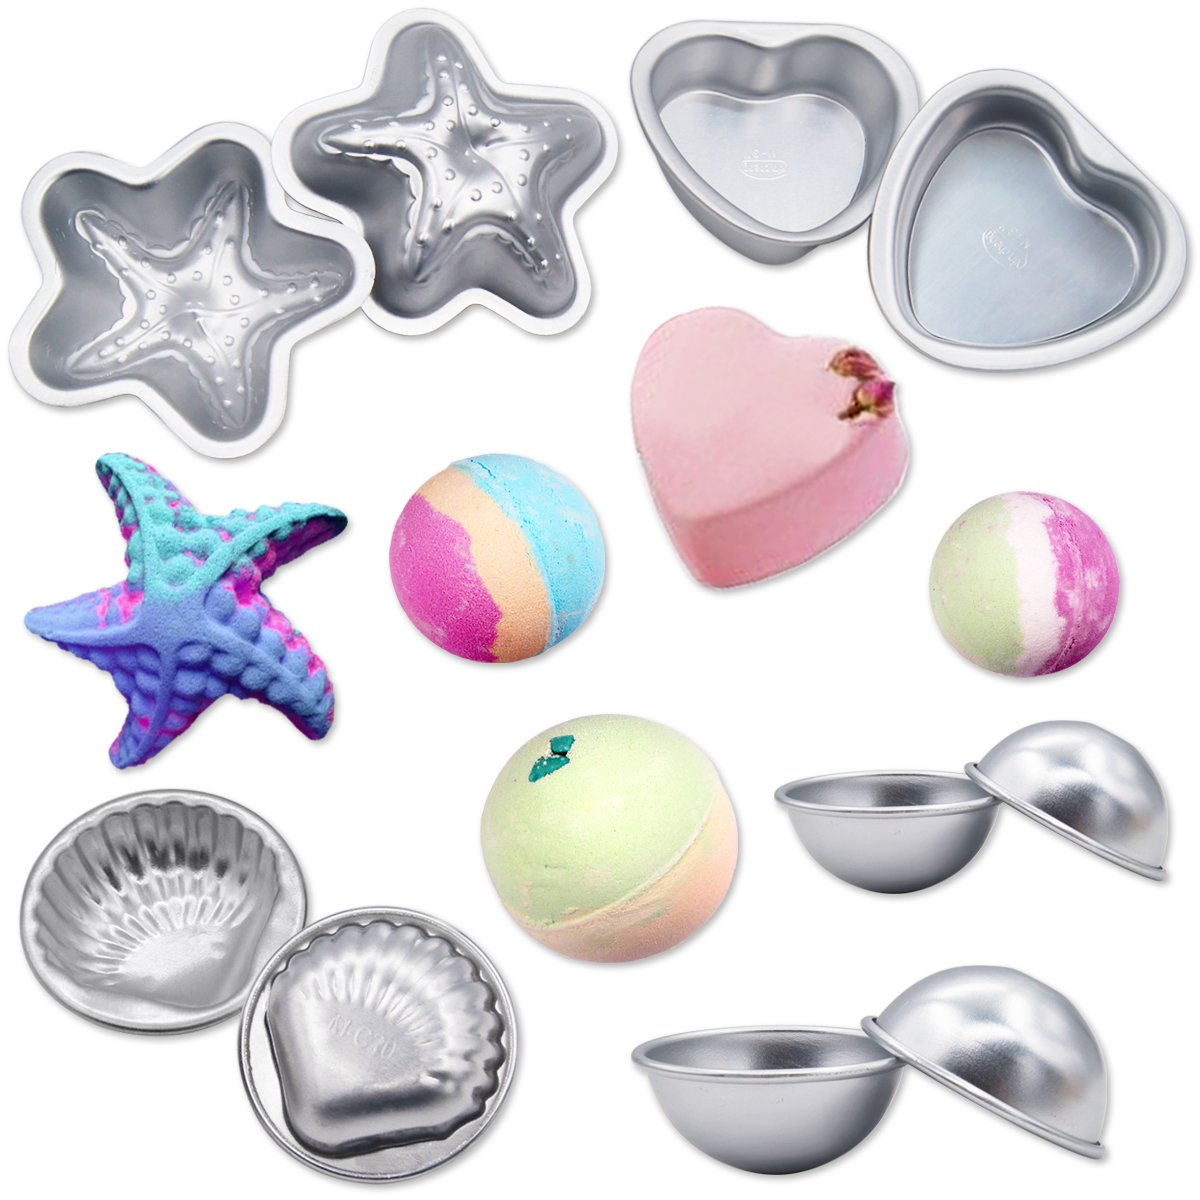 DONUTS 2 Pieces Assorted Size Metal Donut Bath Bomb Molds to Make Unique Cute Homemade or Business Bath Bombs